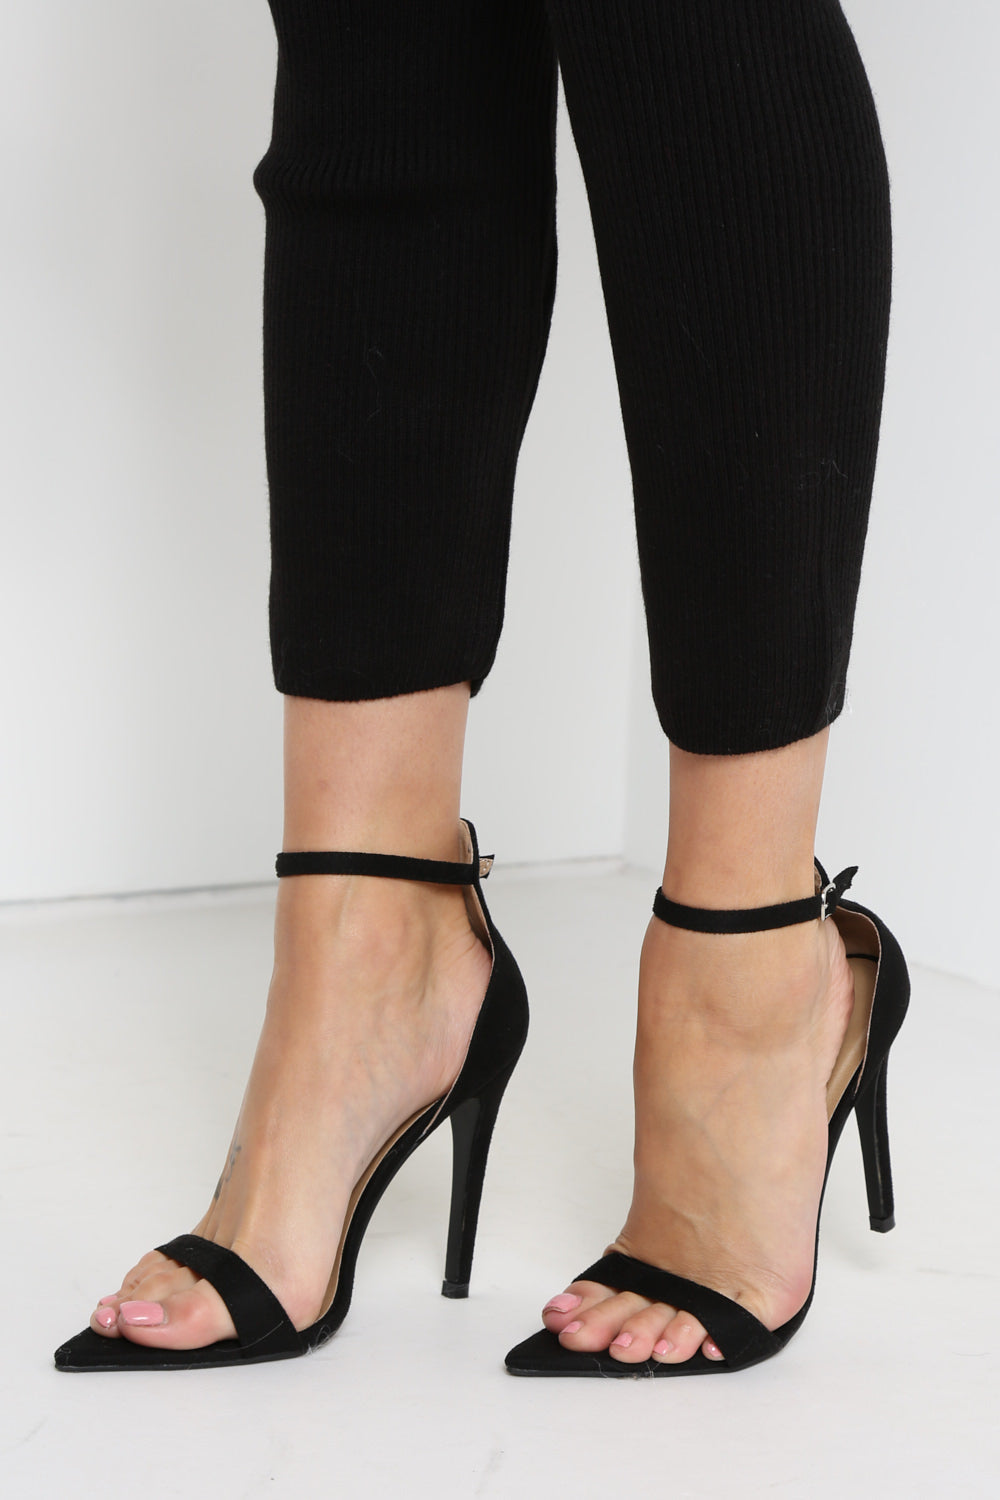 Black Ankle Strap Suede Pointed Heels